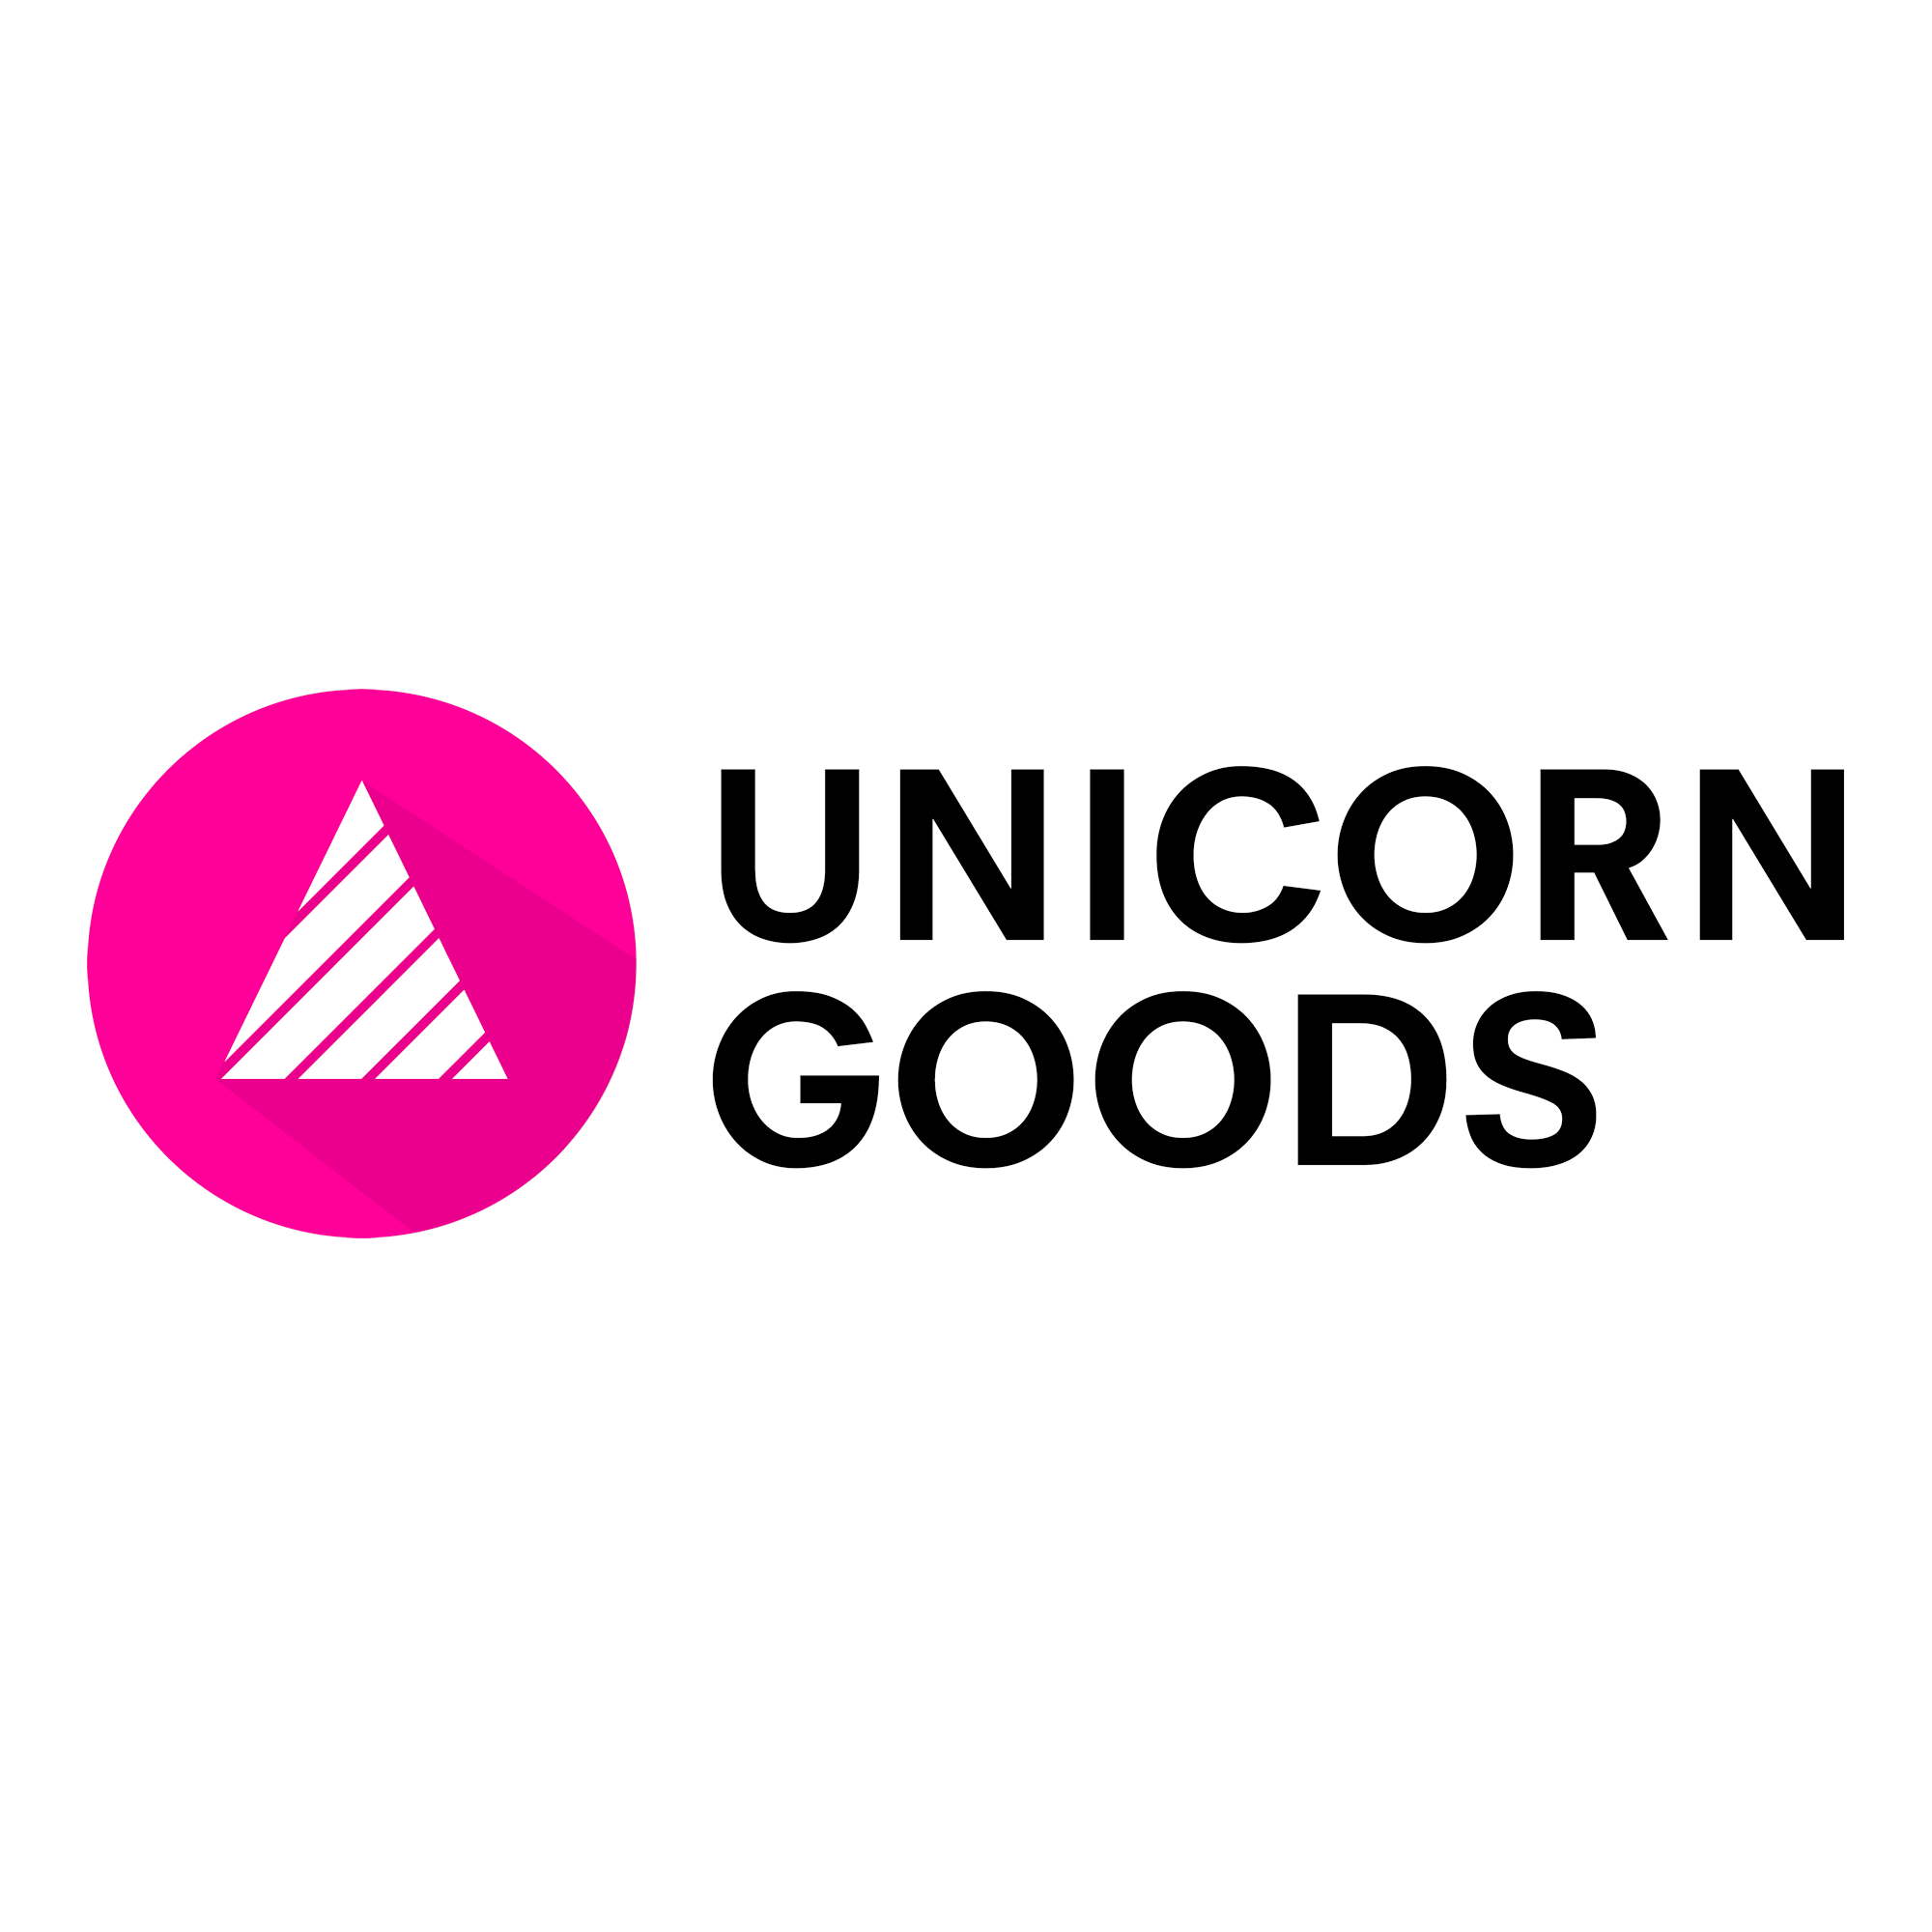 Unicorn Goods